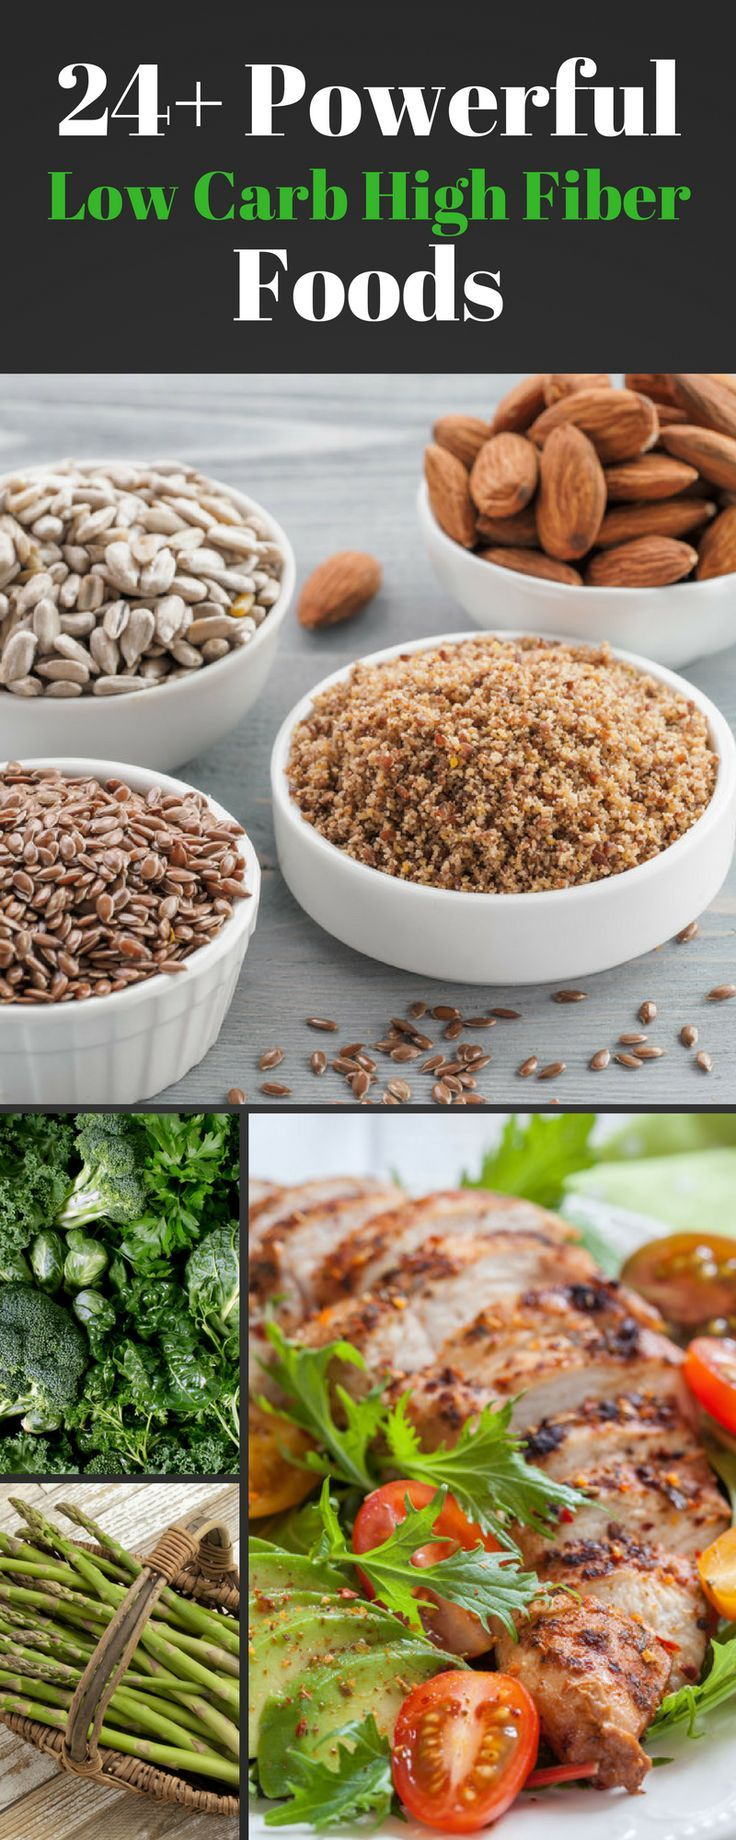 what foods are high in fiber but low in carbs